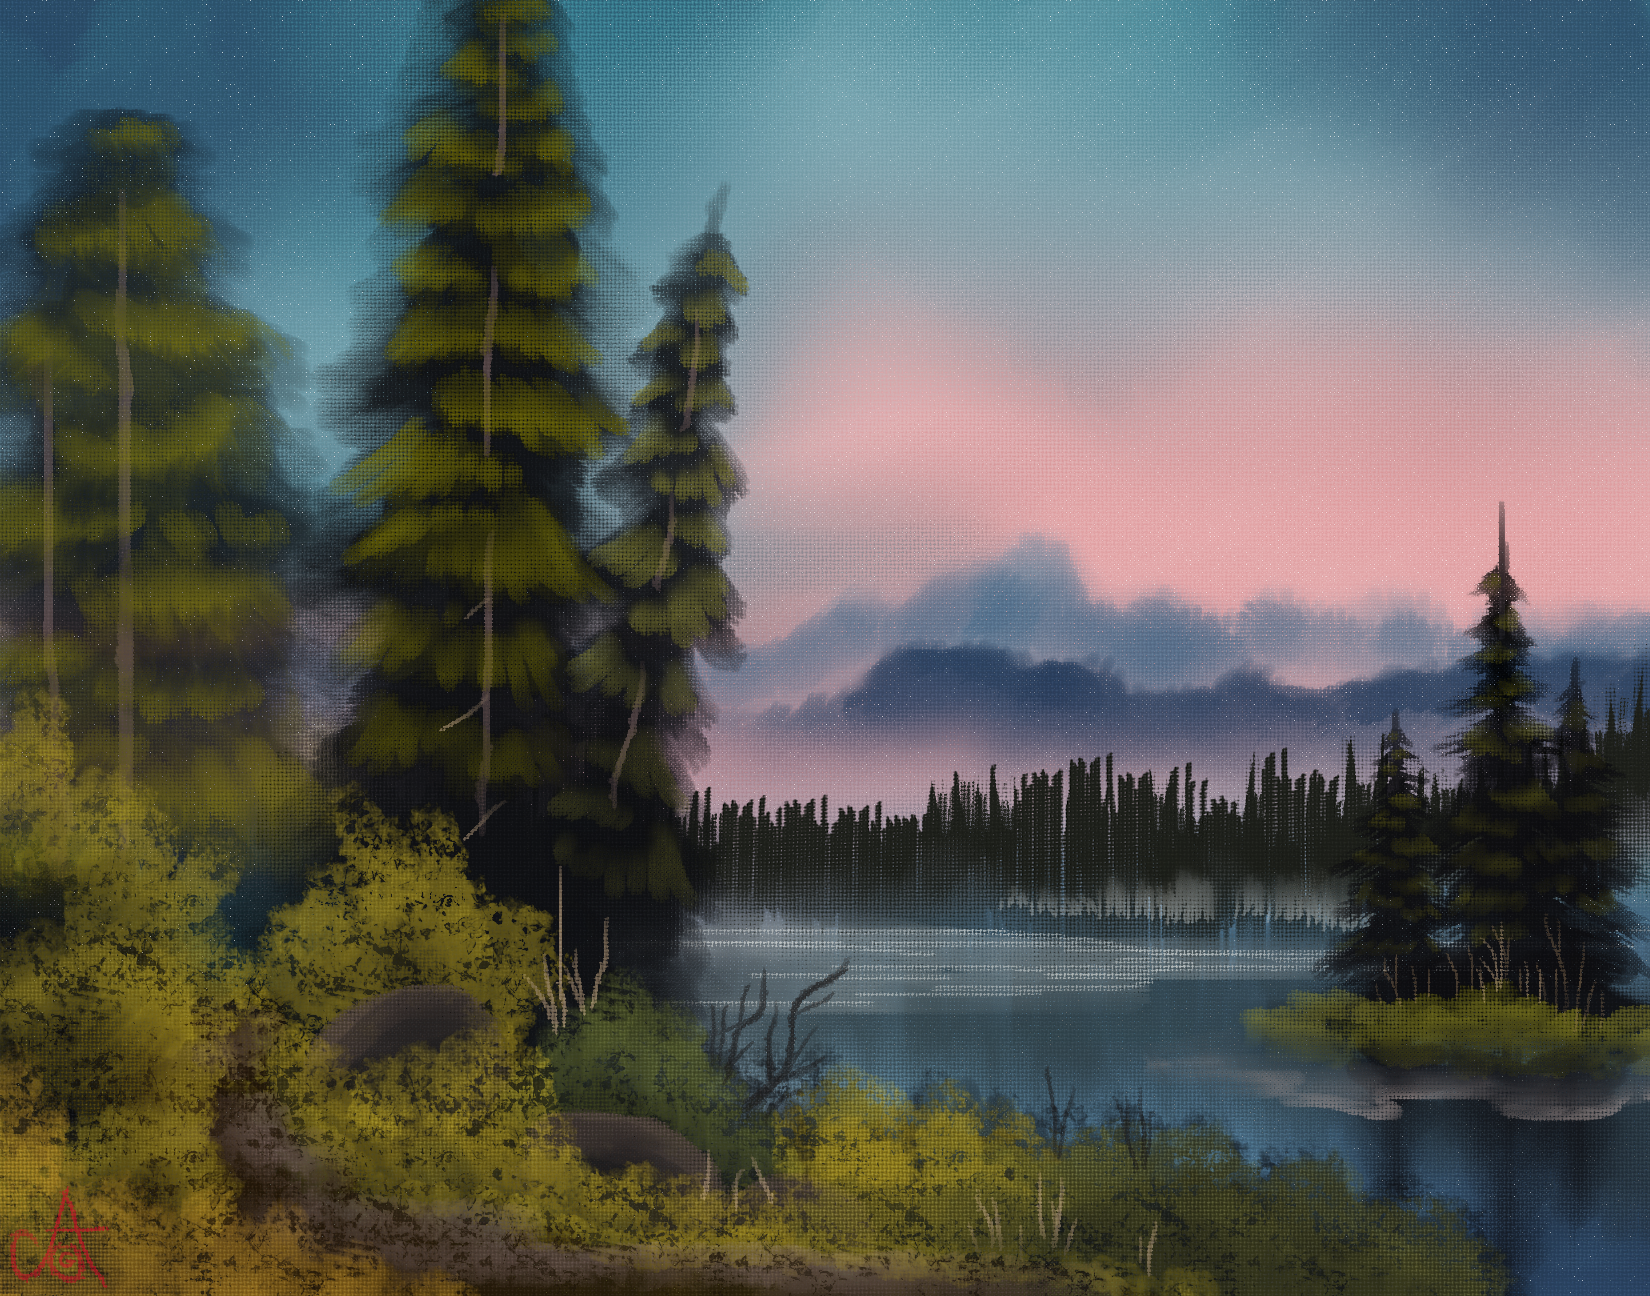 Island In The Wilderness By A-O-G On Newgrounds